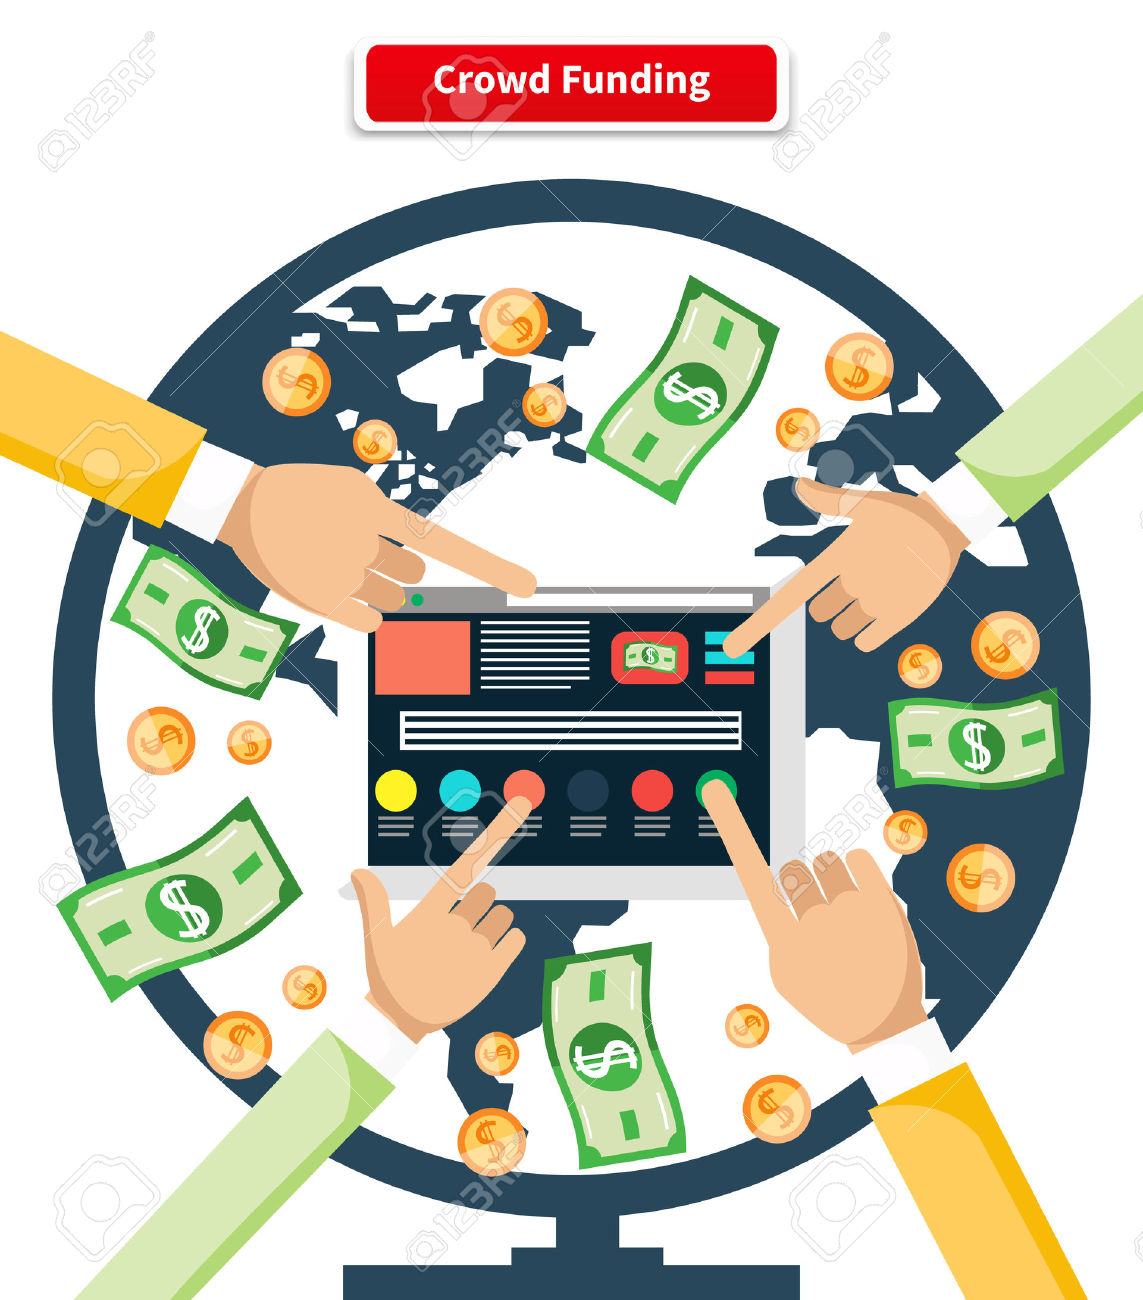 609 Venture Capital Funding Stock Illustrations, Cliparts And.